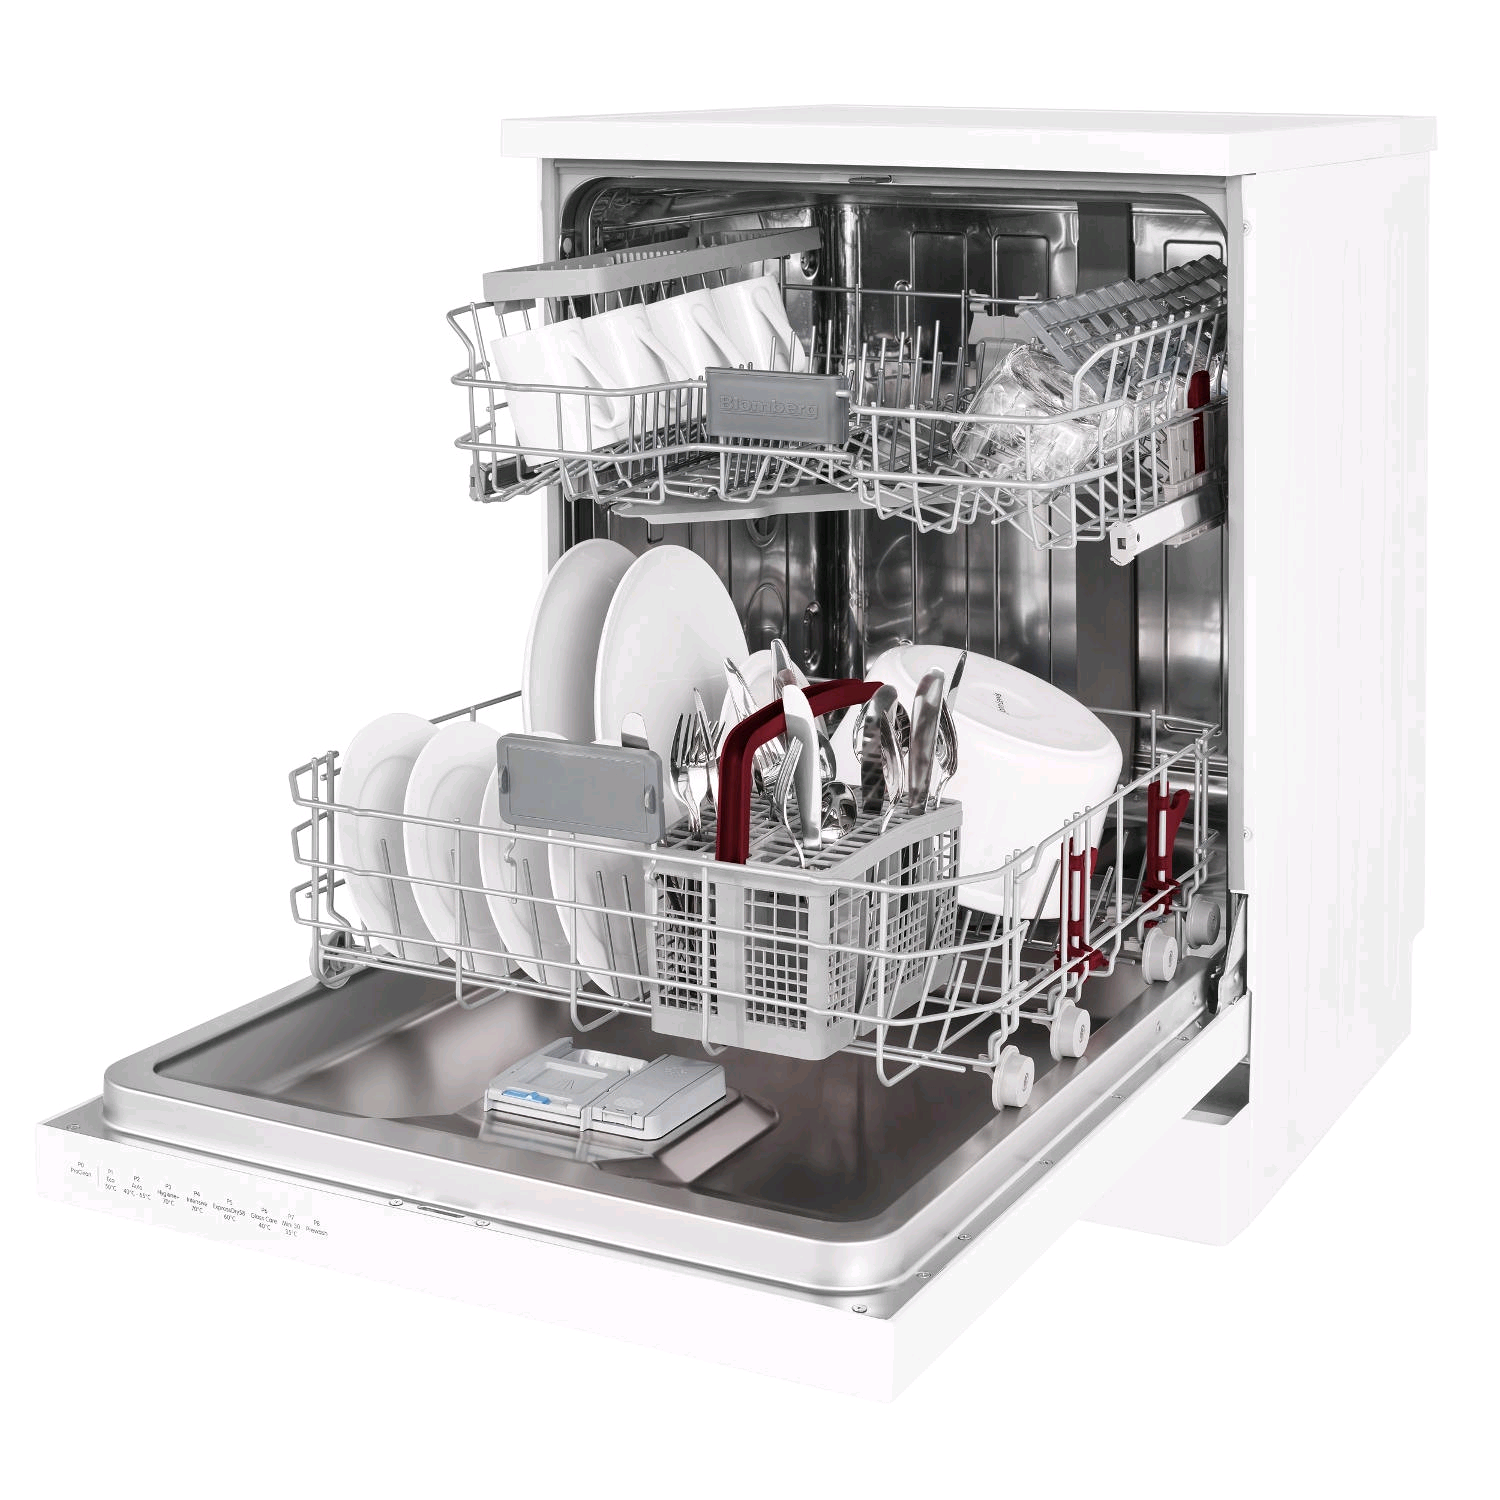 Blomberg Dishwasher Full Size White 14 Place A++ H850 W600 D600 3 Yr Warranty       Which Best Buy Model